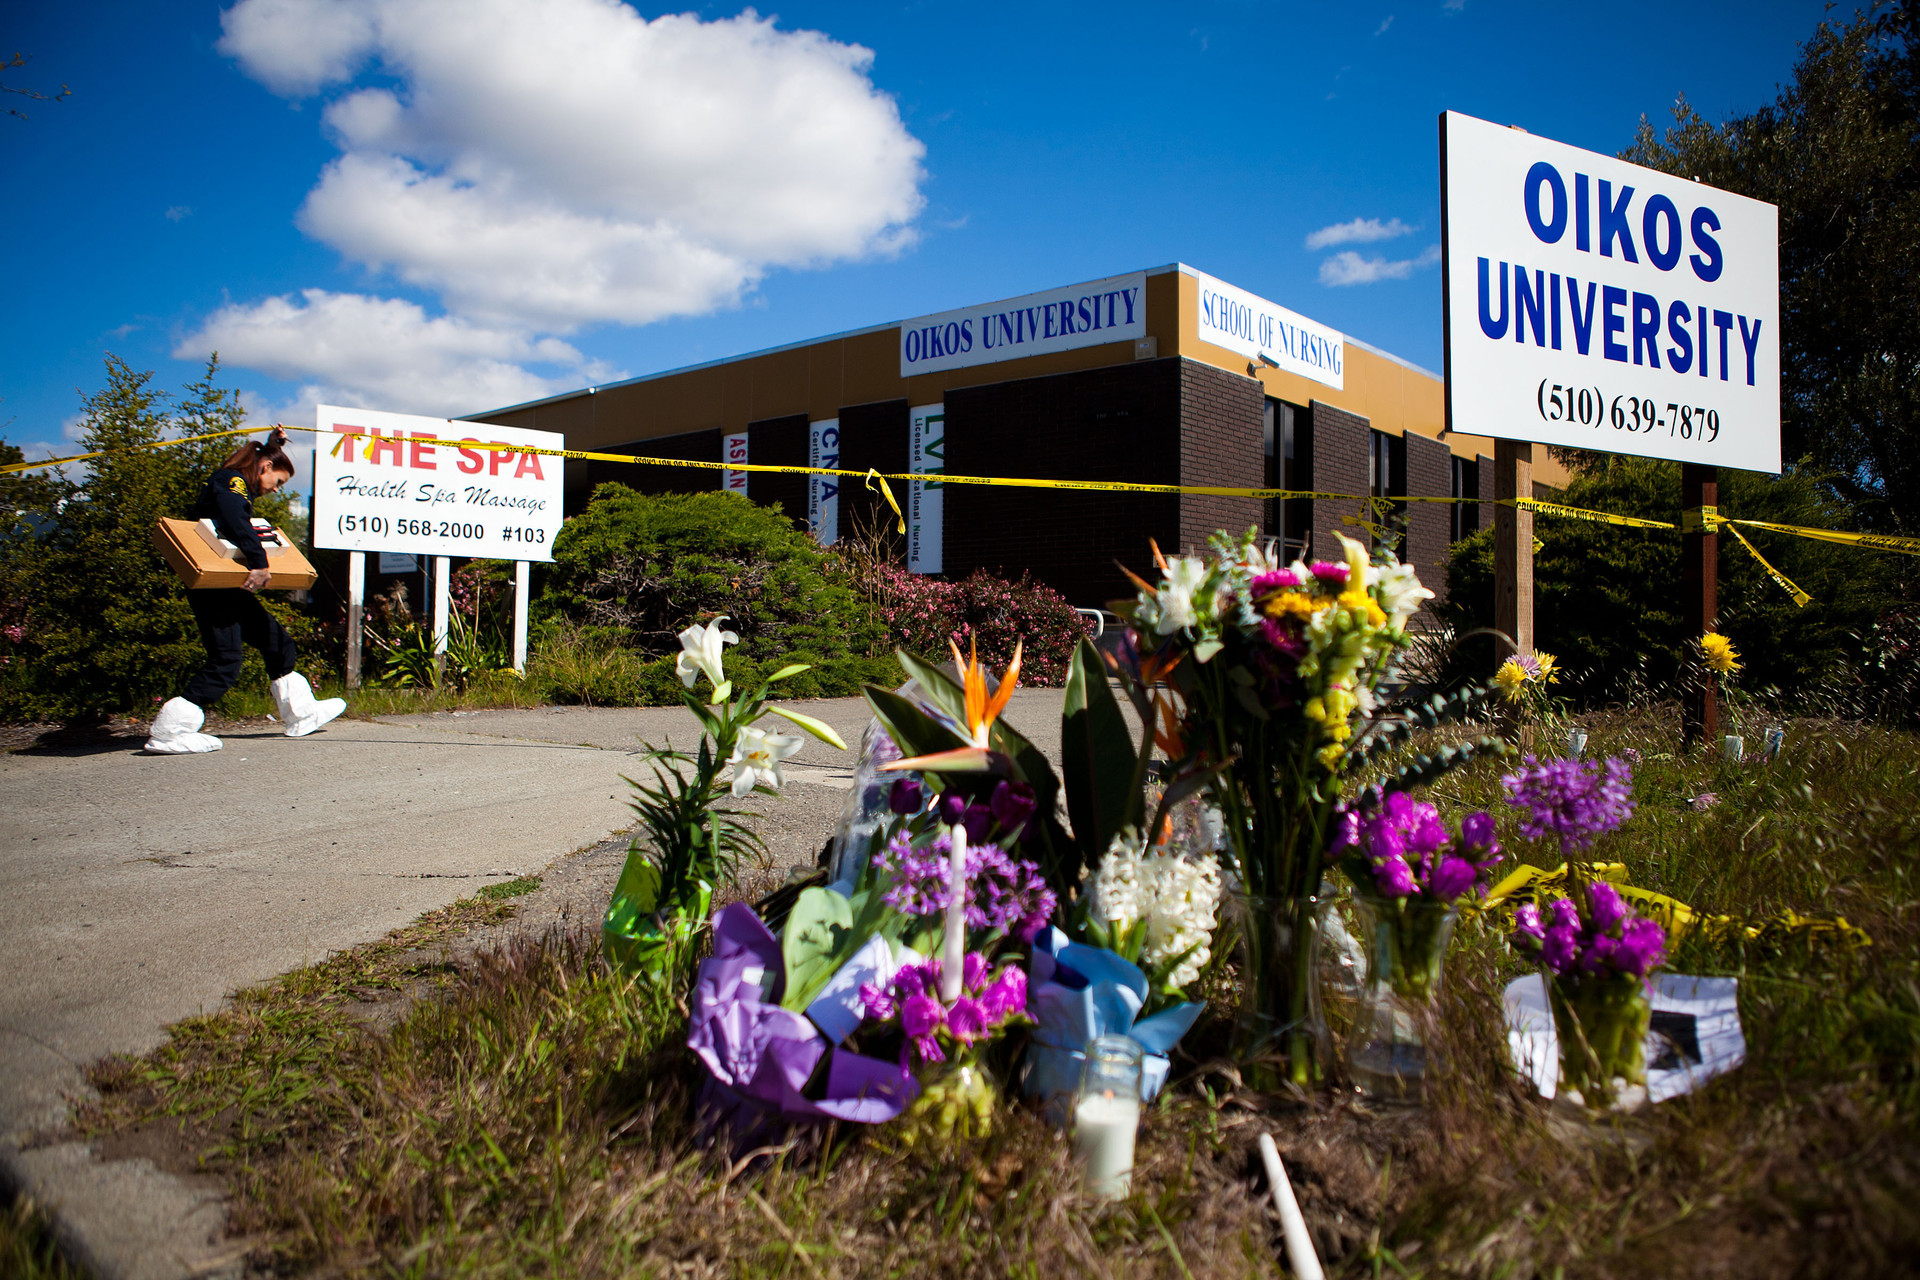 A member of the Oakland Police Crime Scene Investigation Unit walks past a makeshift memorial as she enters Oikos University where a gunman had gone on a shooting rampage.